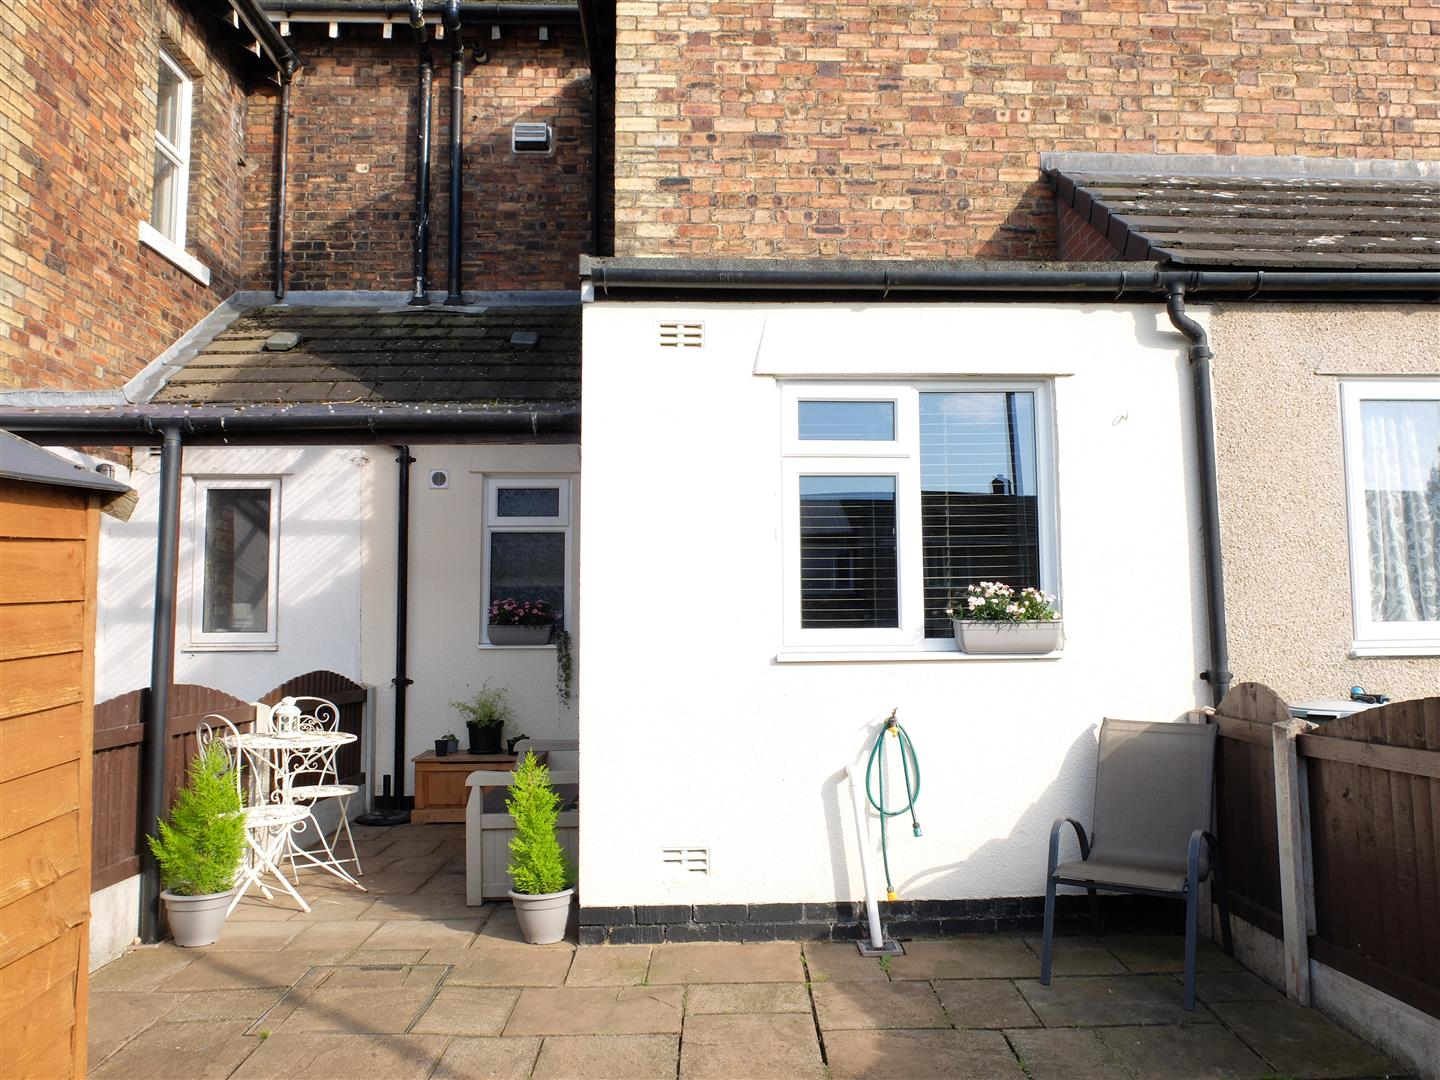 2 Bedrooms House - Terraced On Sale 7, Caledonian Buildings Etterby Road Carlisle 125,000